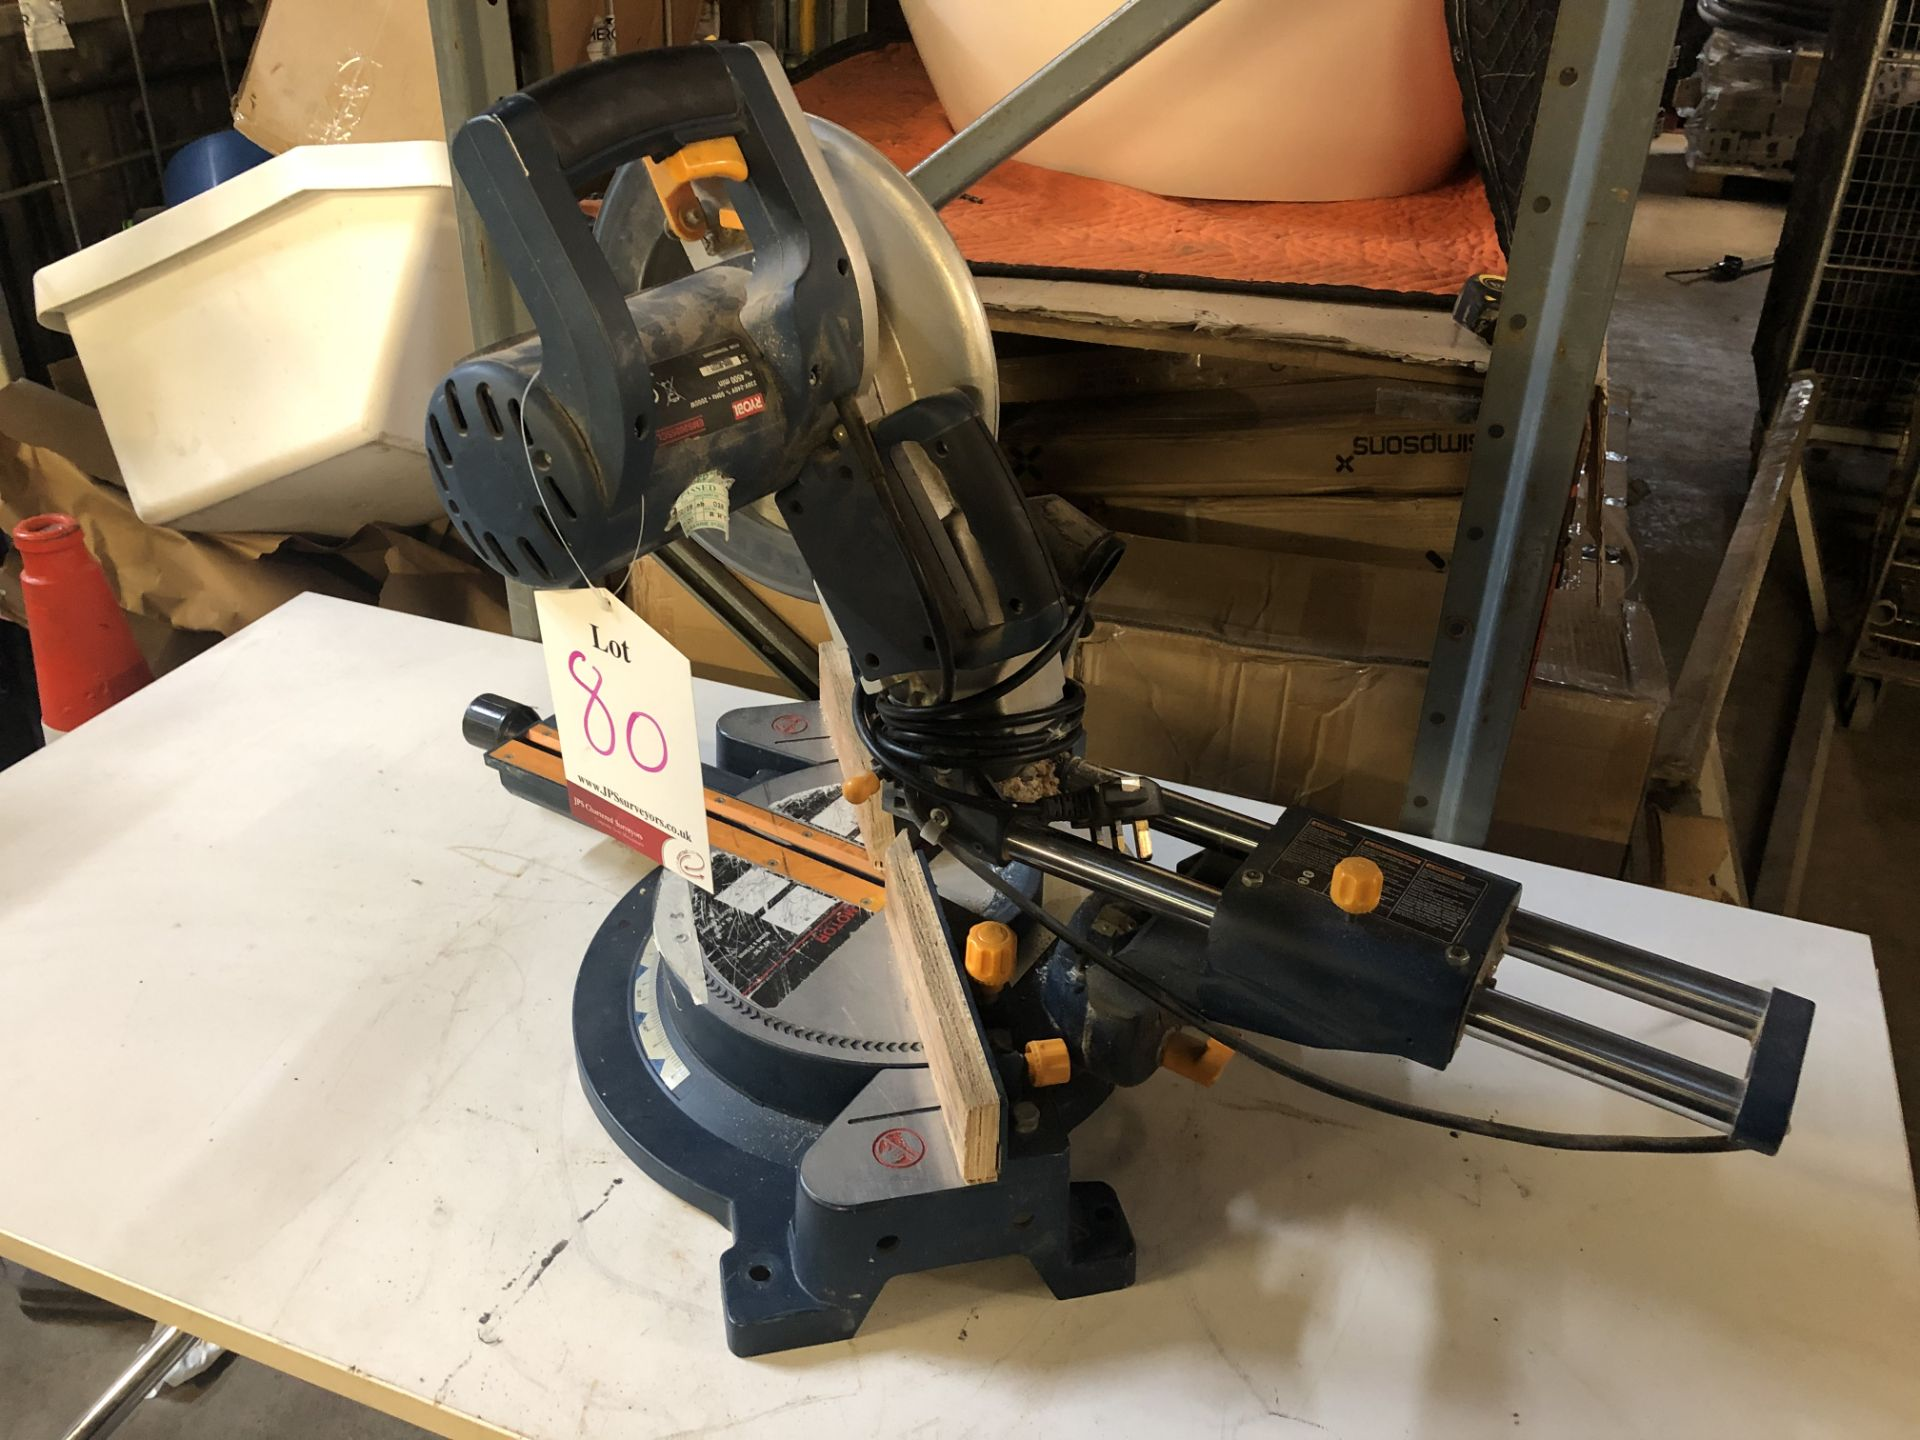 Lot 80 - Ryobi EMS2025SCL Sliding Compound Mitre Saw